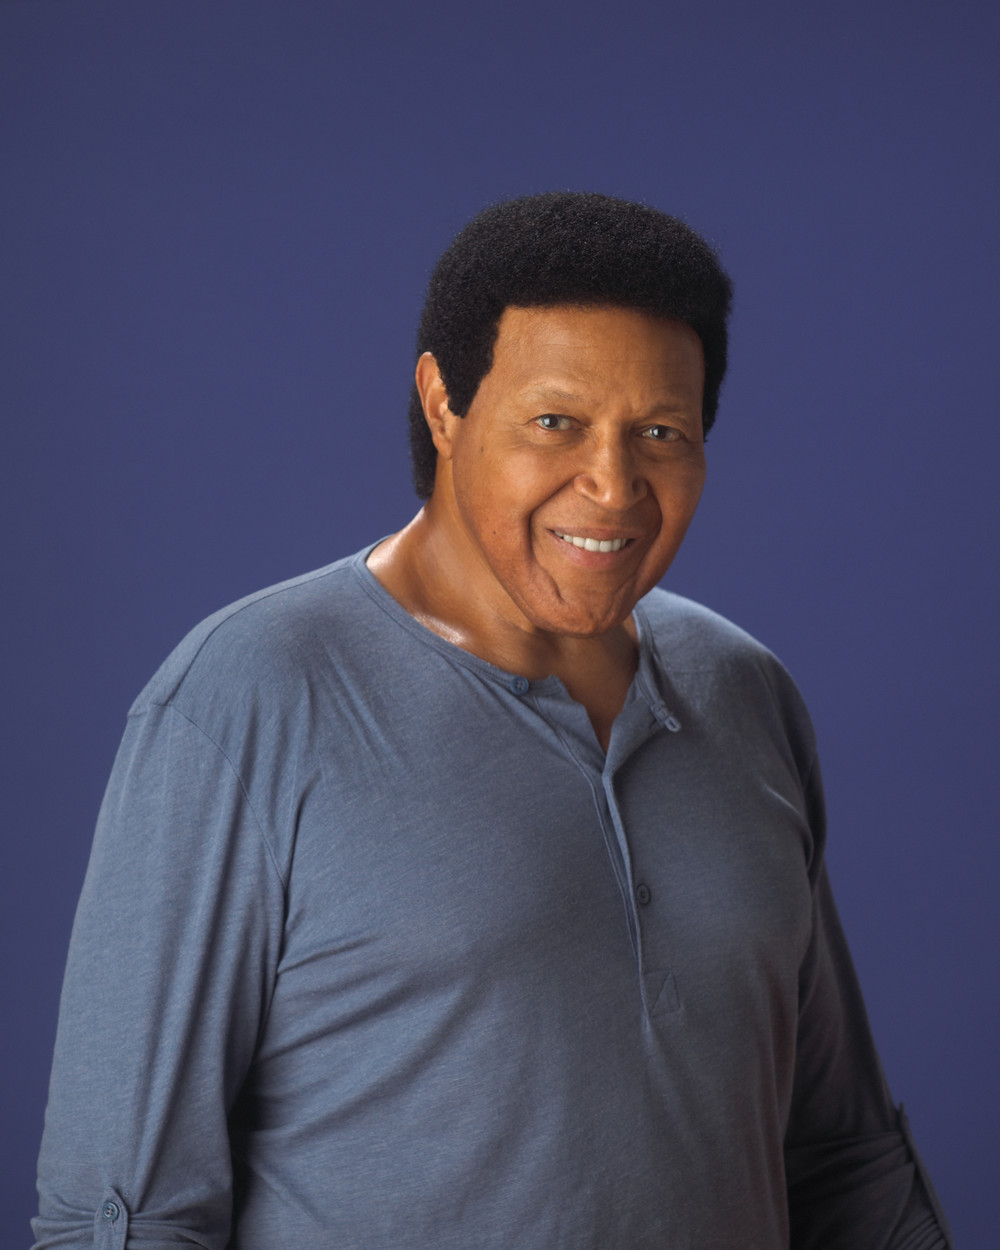 Chubby checker passingtures, picture of alex wanda sykes wife